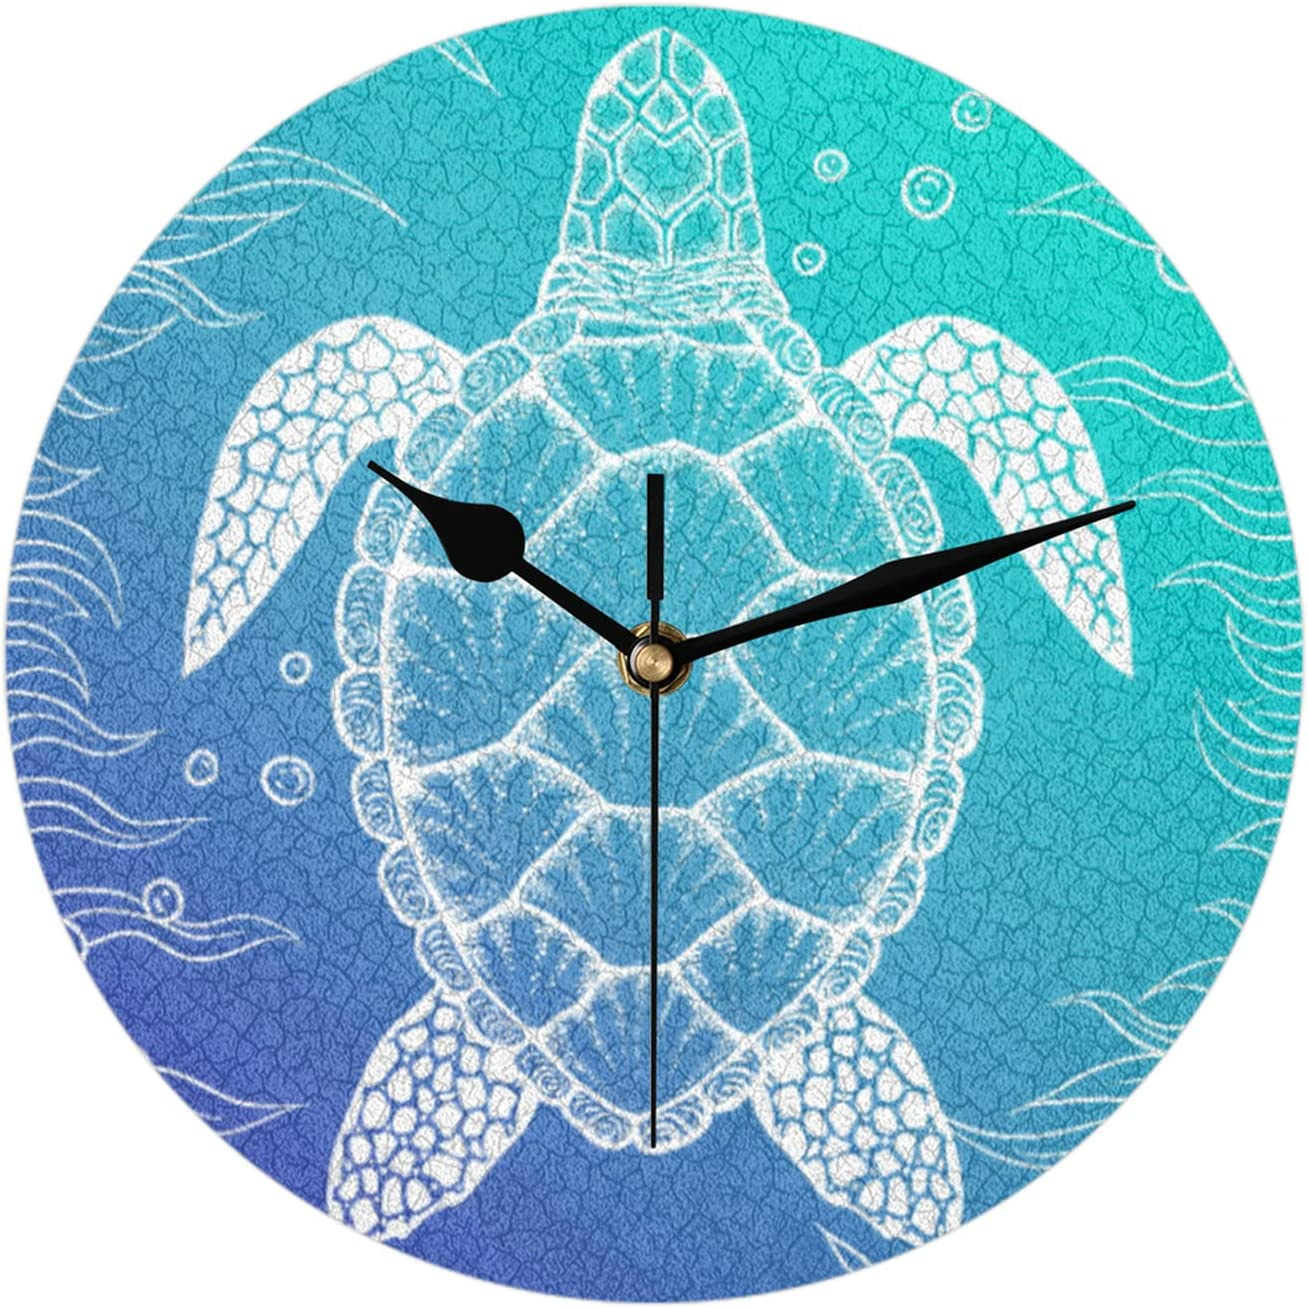 All stores are sold Turtle ound Wall Clock Decorative Home Living Room Kitchen Our shop most popular for